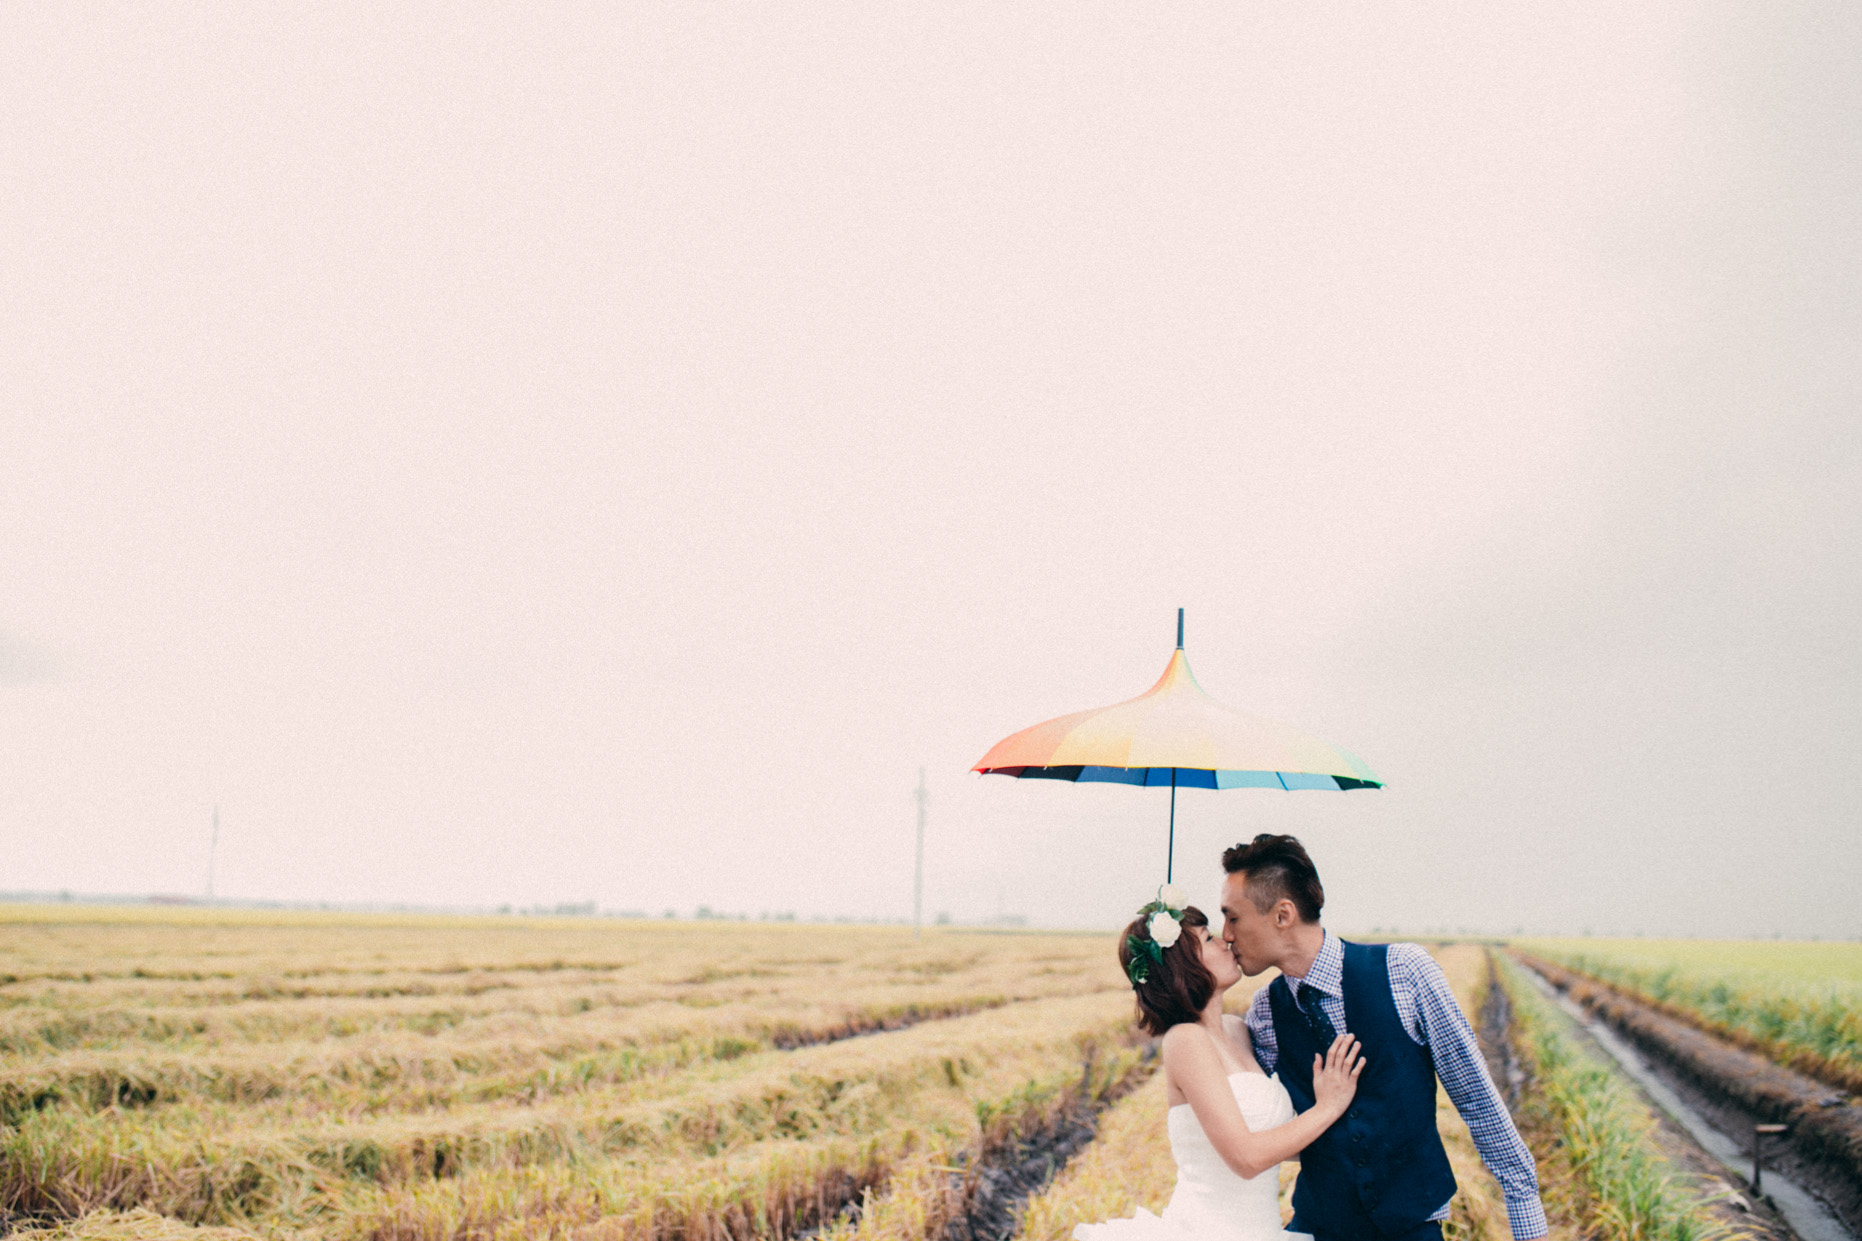 9-hellojanelee-singapore-malaysia-wedding-photographer-prewedding-carrie-sekinchan